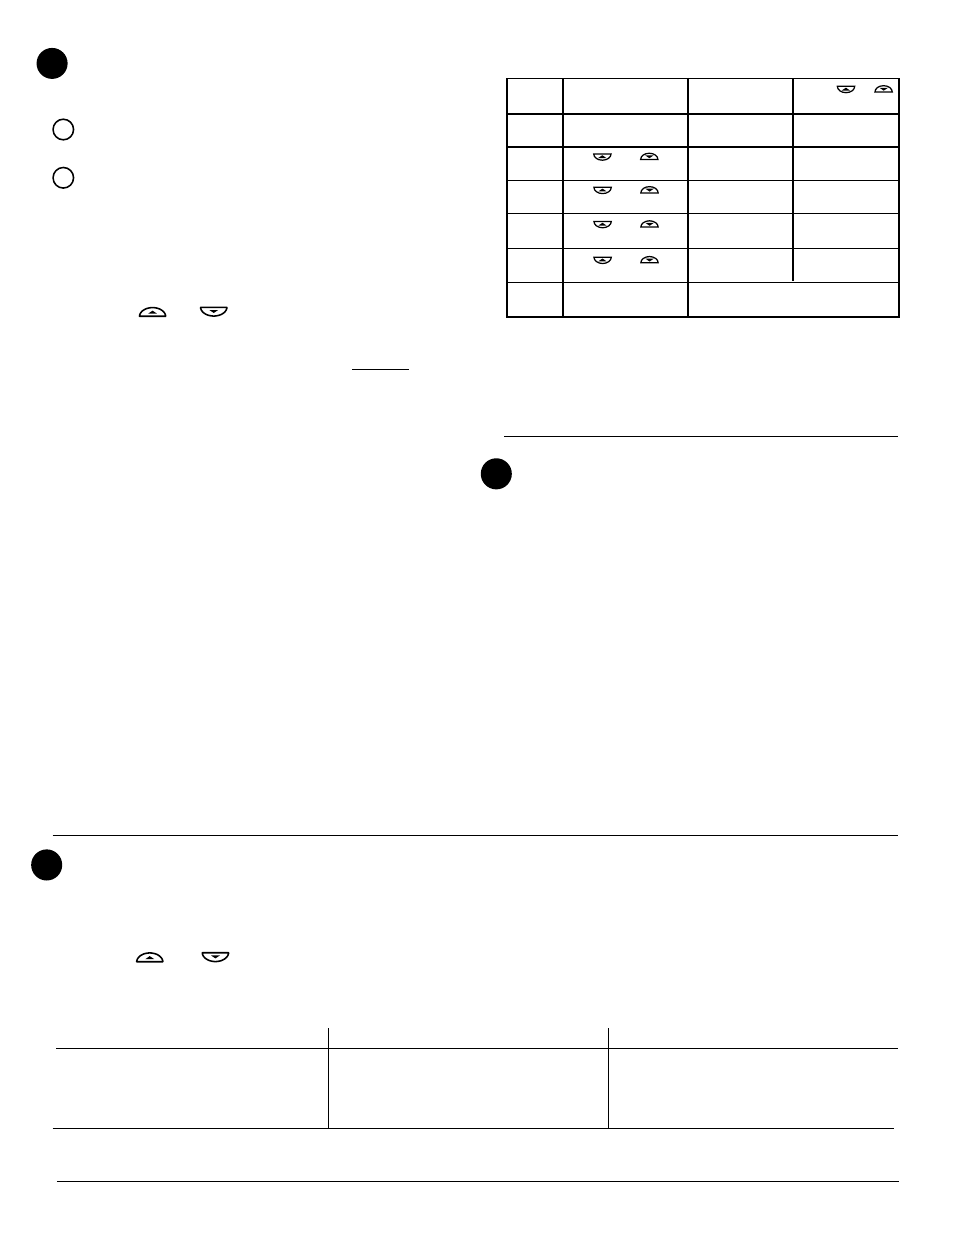 white rodgers 1f79 page5 check thermostat operation, specifications, troubleshooting white rodgers thermostat wiring diagram 1f79 at honlapkeszites.co